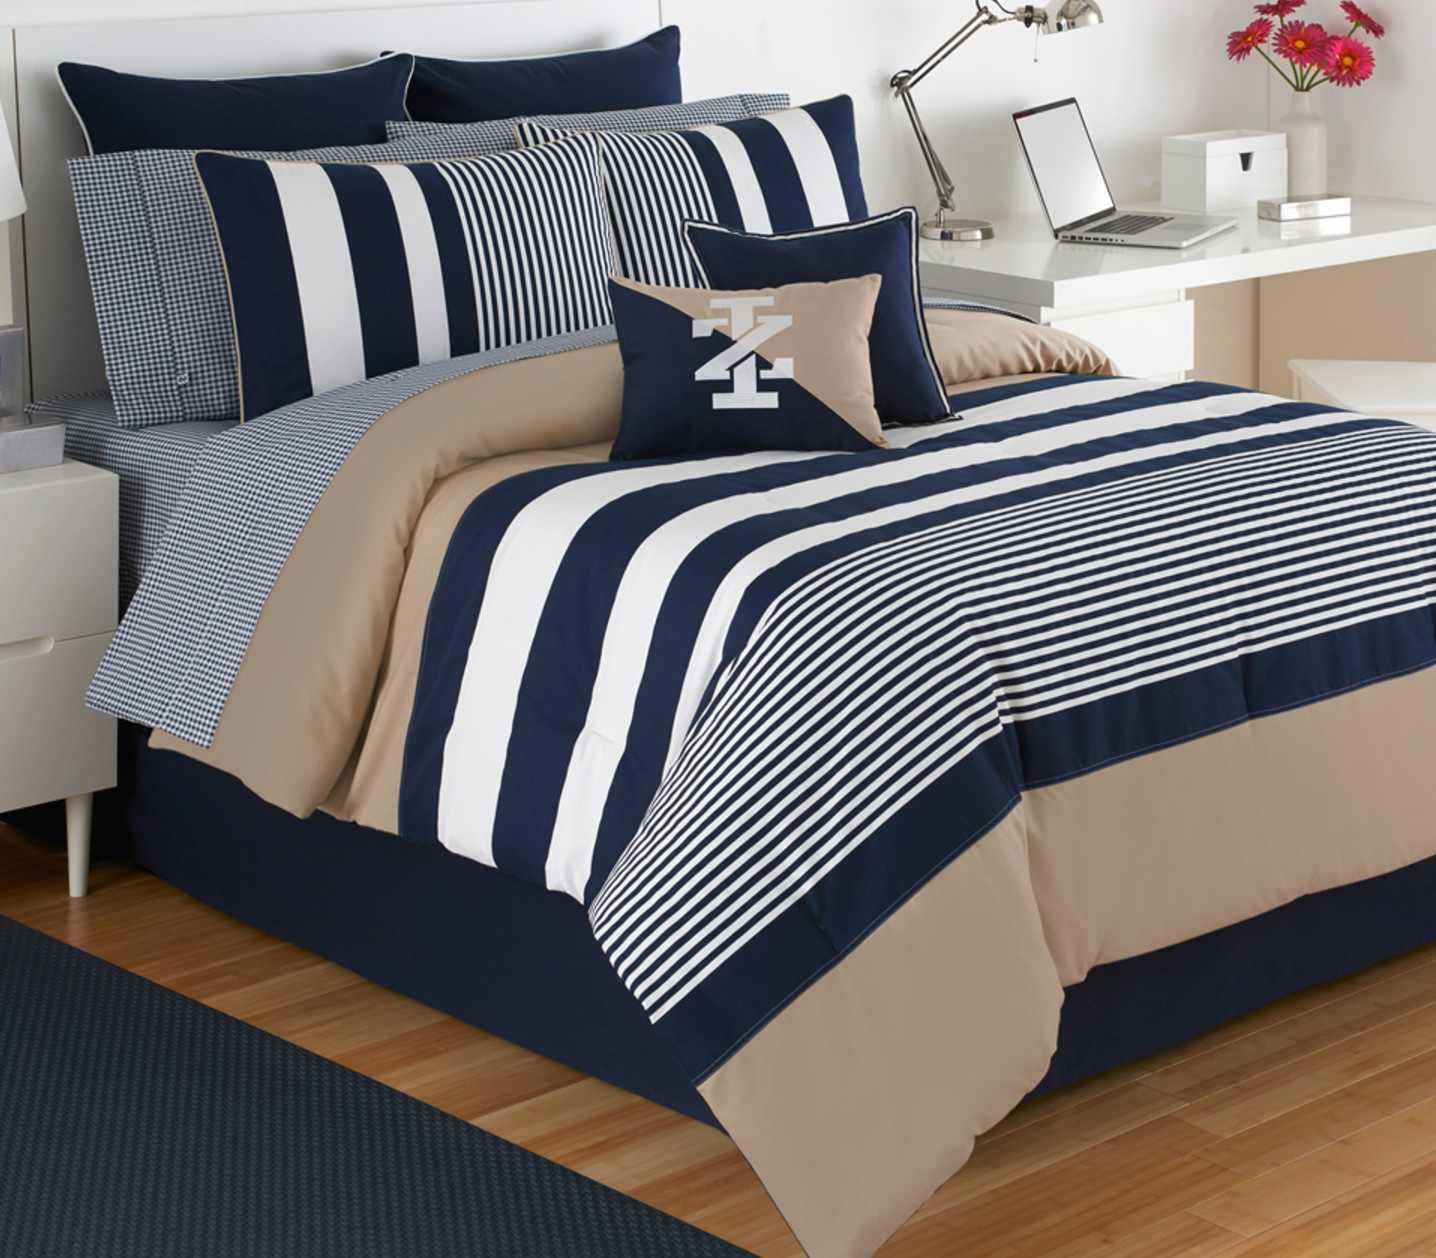 Classic Stripe by IZOD Bedding  BeddingSuperStorecom